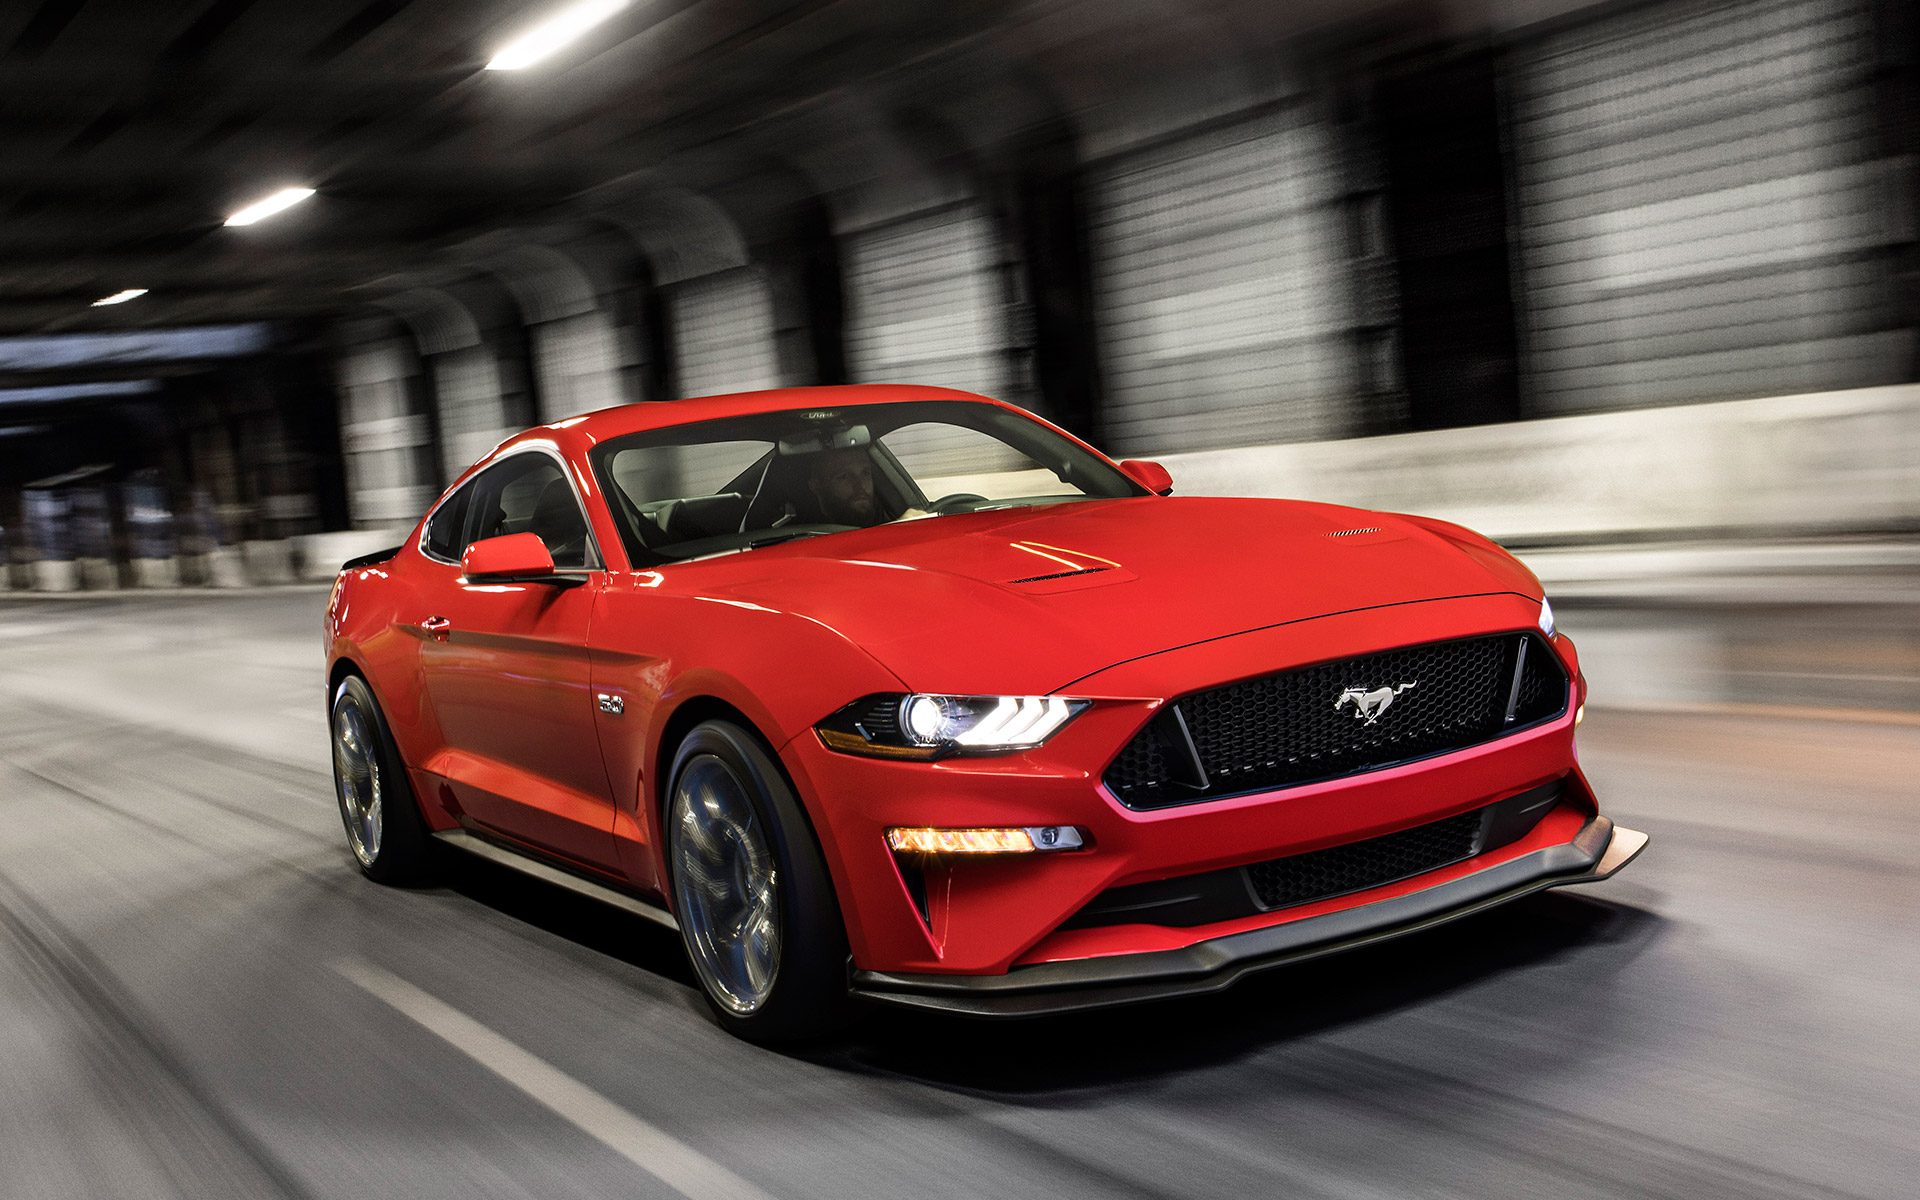 2018 Ford Mustang GT Levels Up With New Performance Pack Level 2